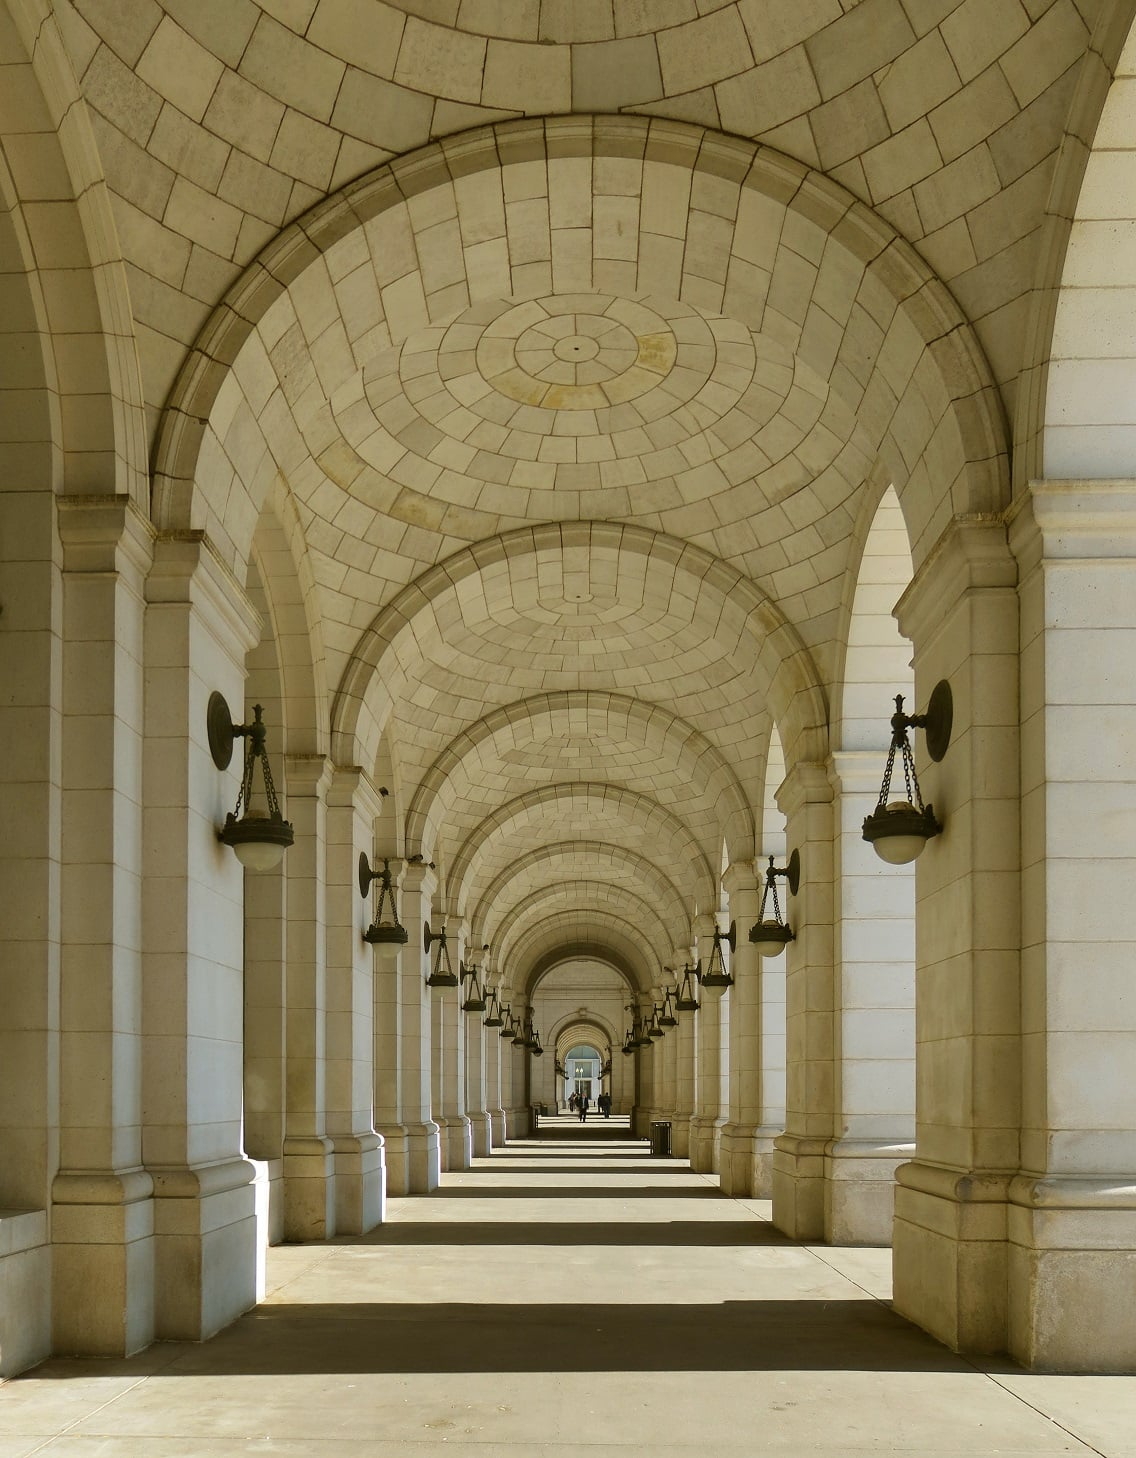 union-Station-Washington-DC-photo-by-Paul-Clemence-14